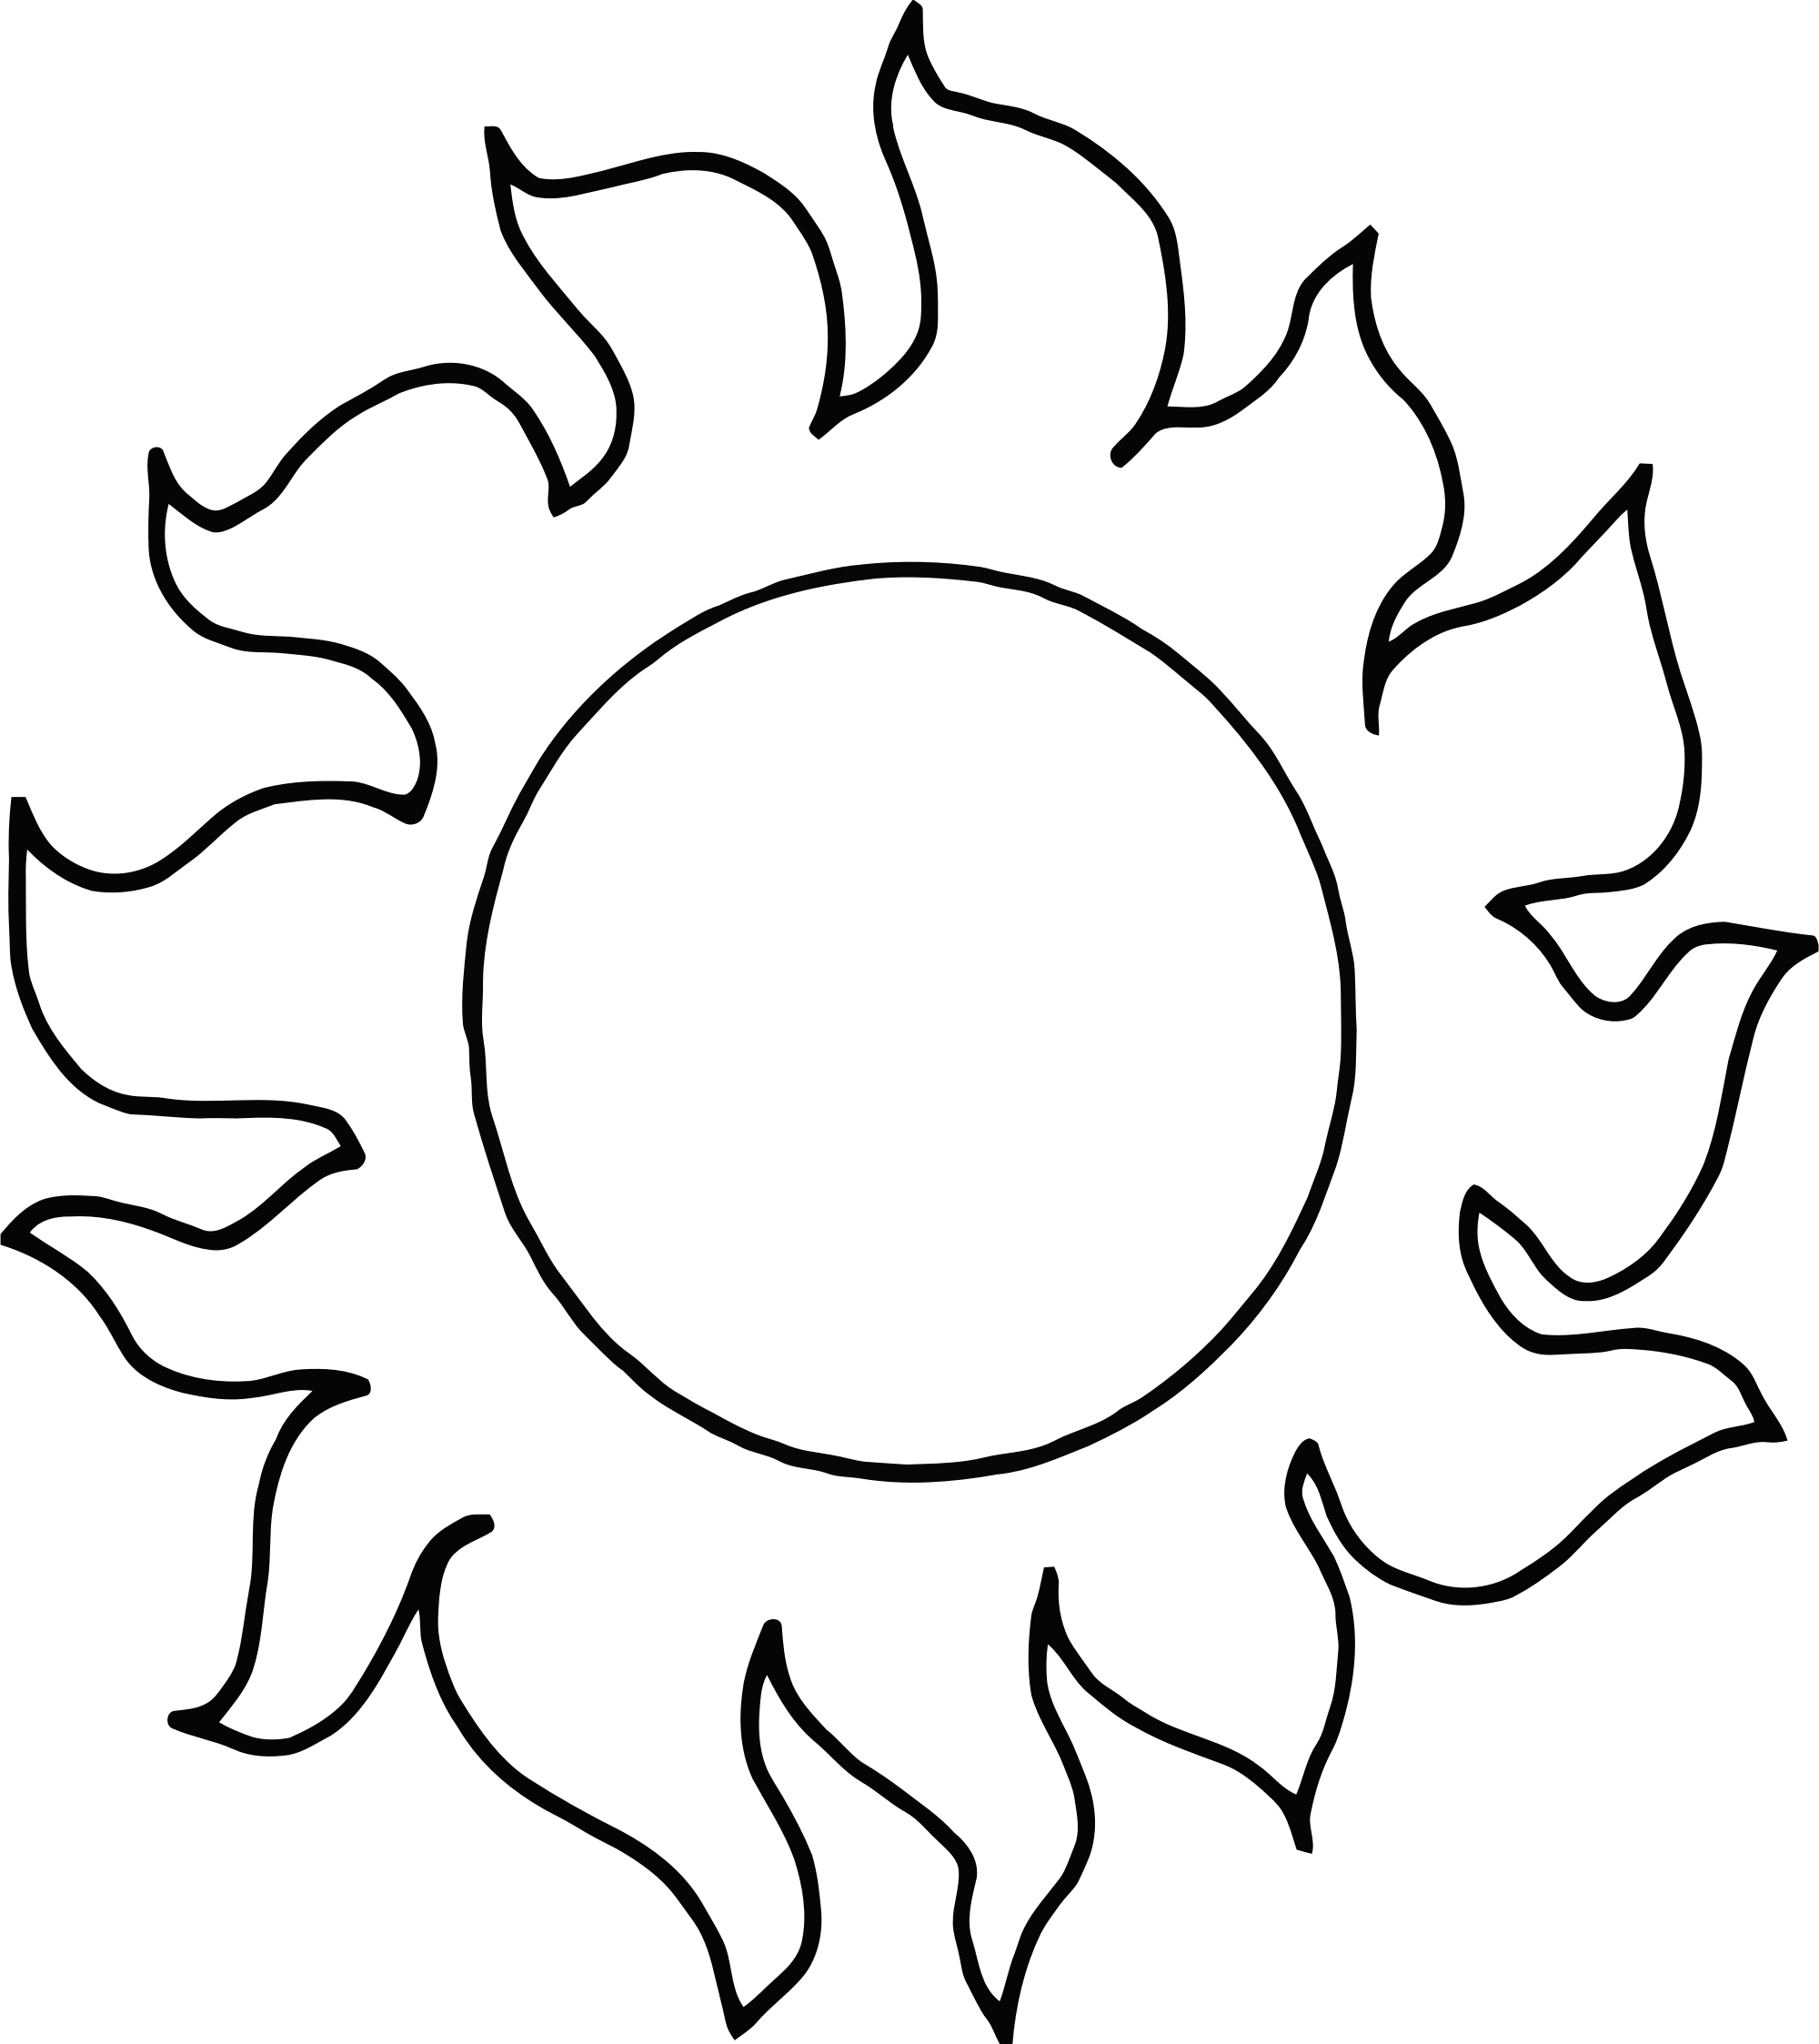 Drawing sunset black and white. Sun moon svg